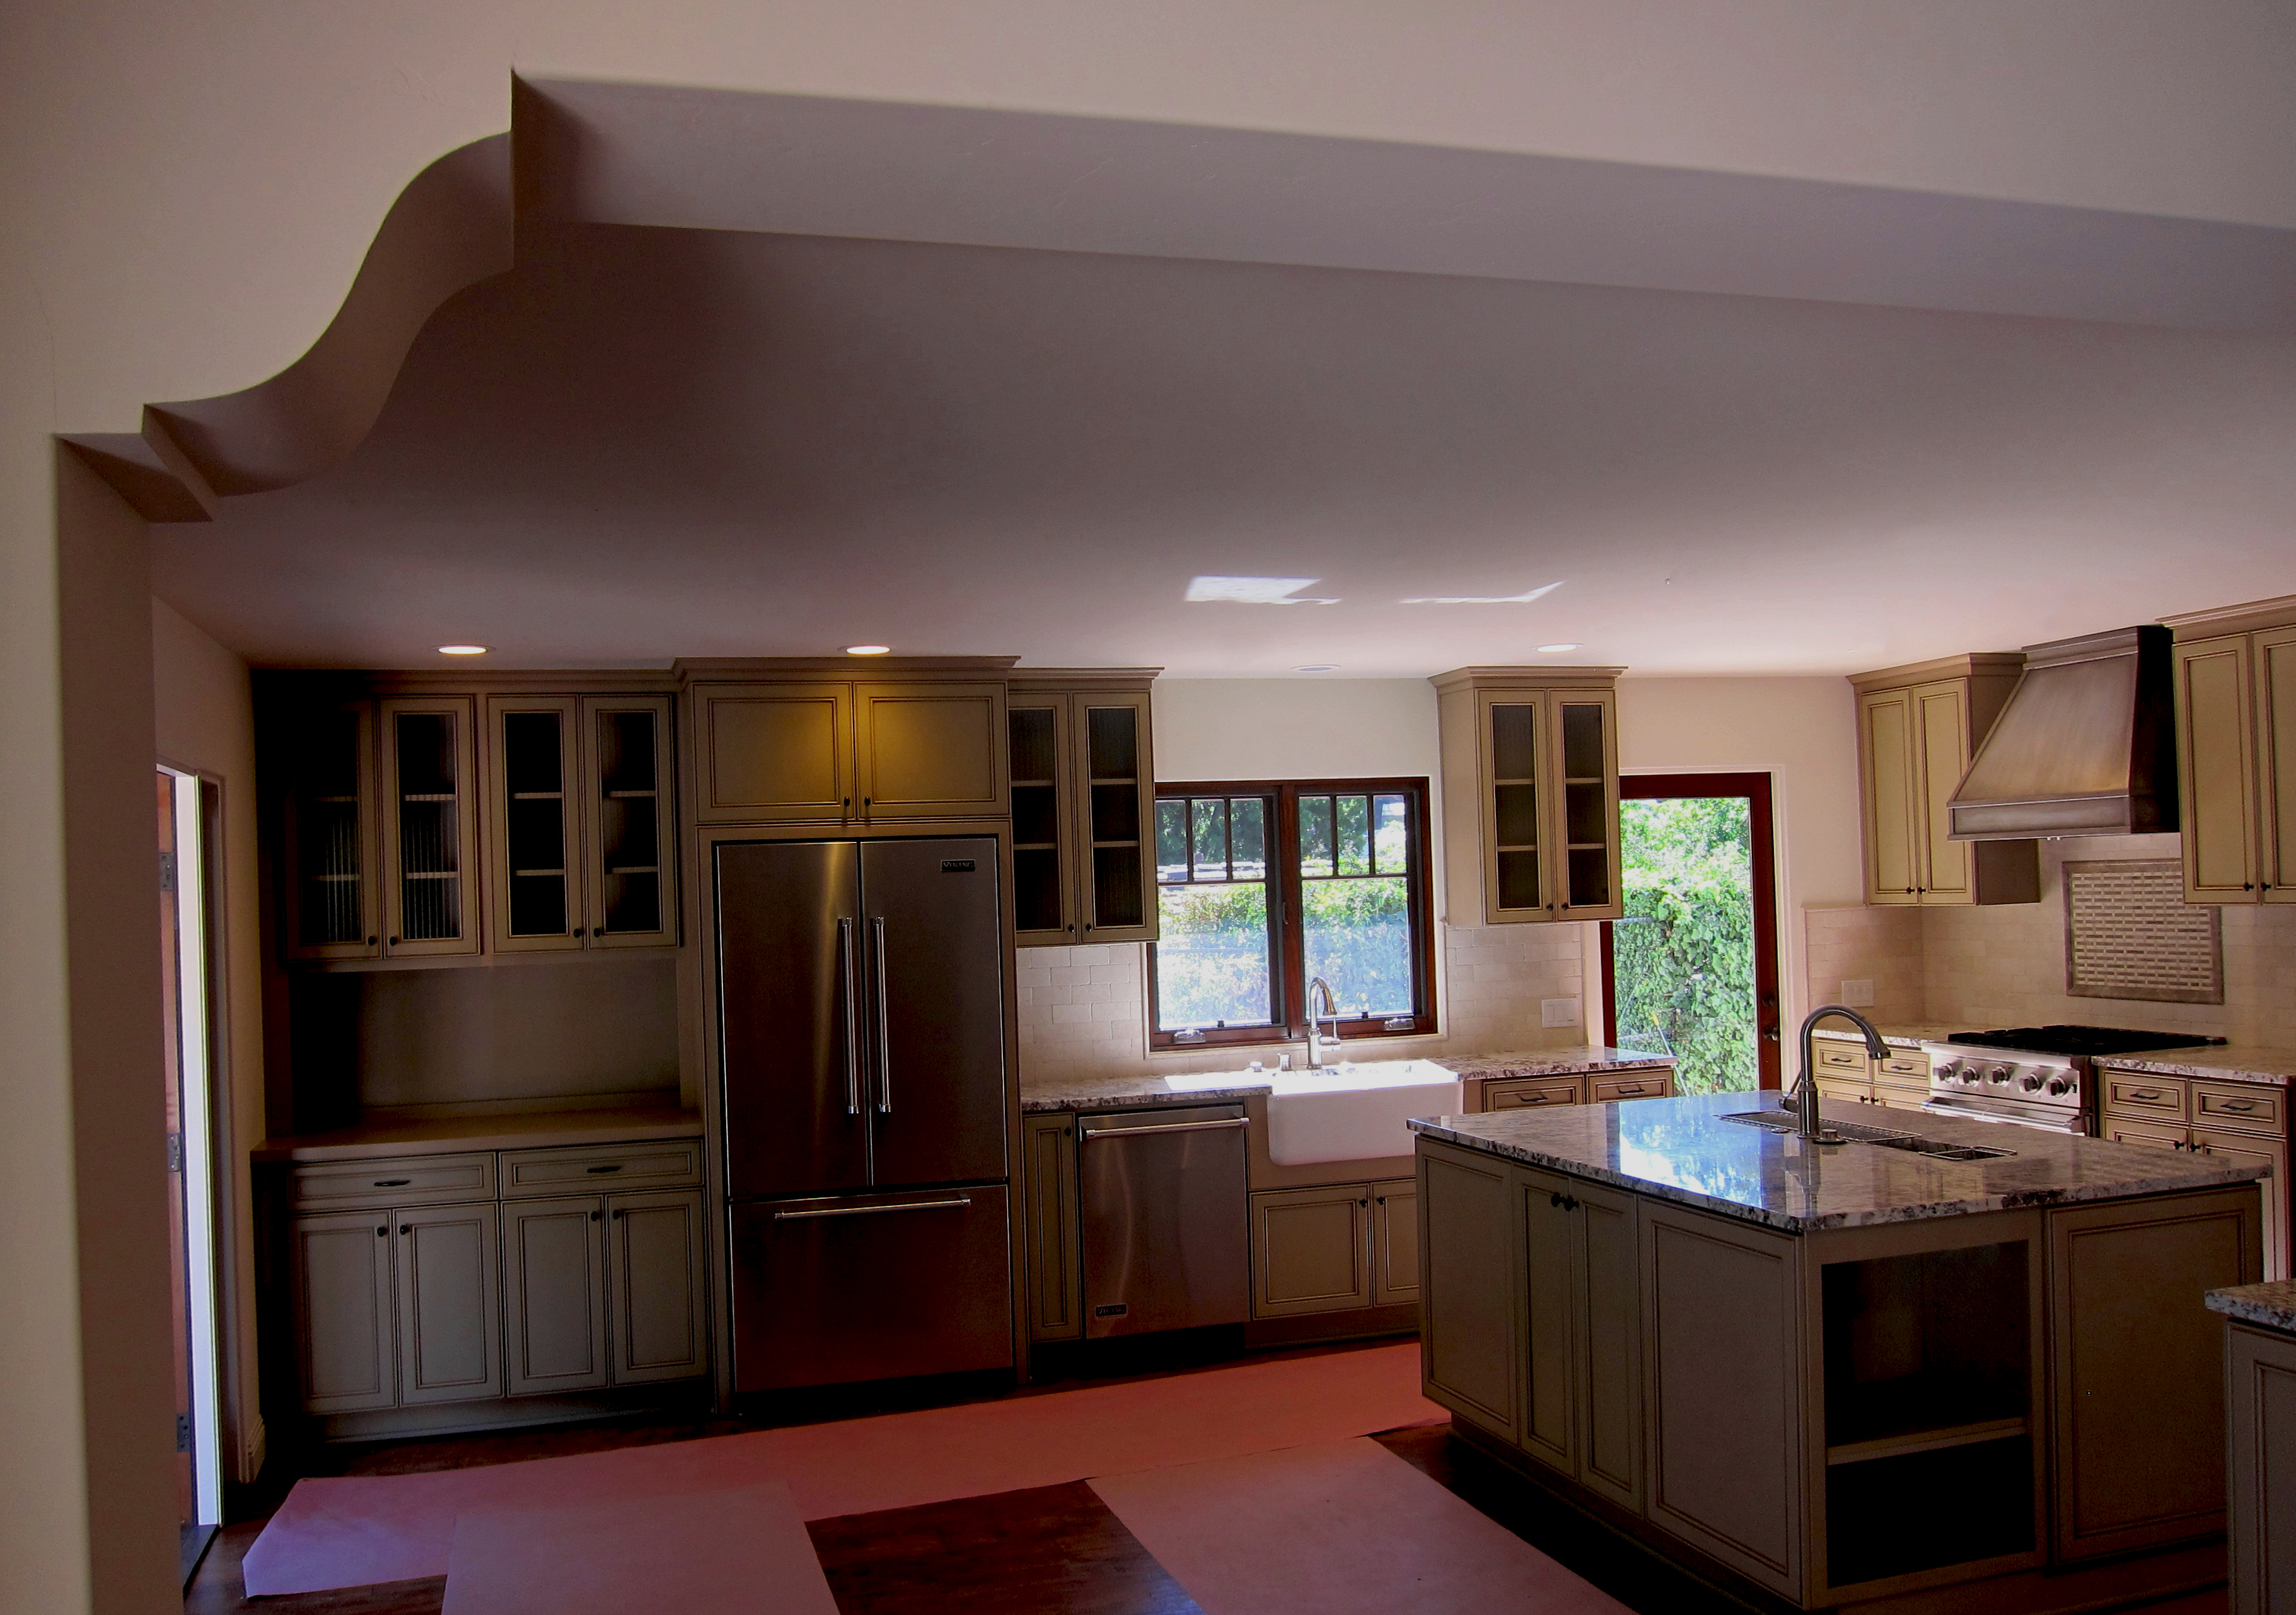 Small Montecito kitchen design photo